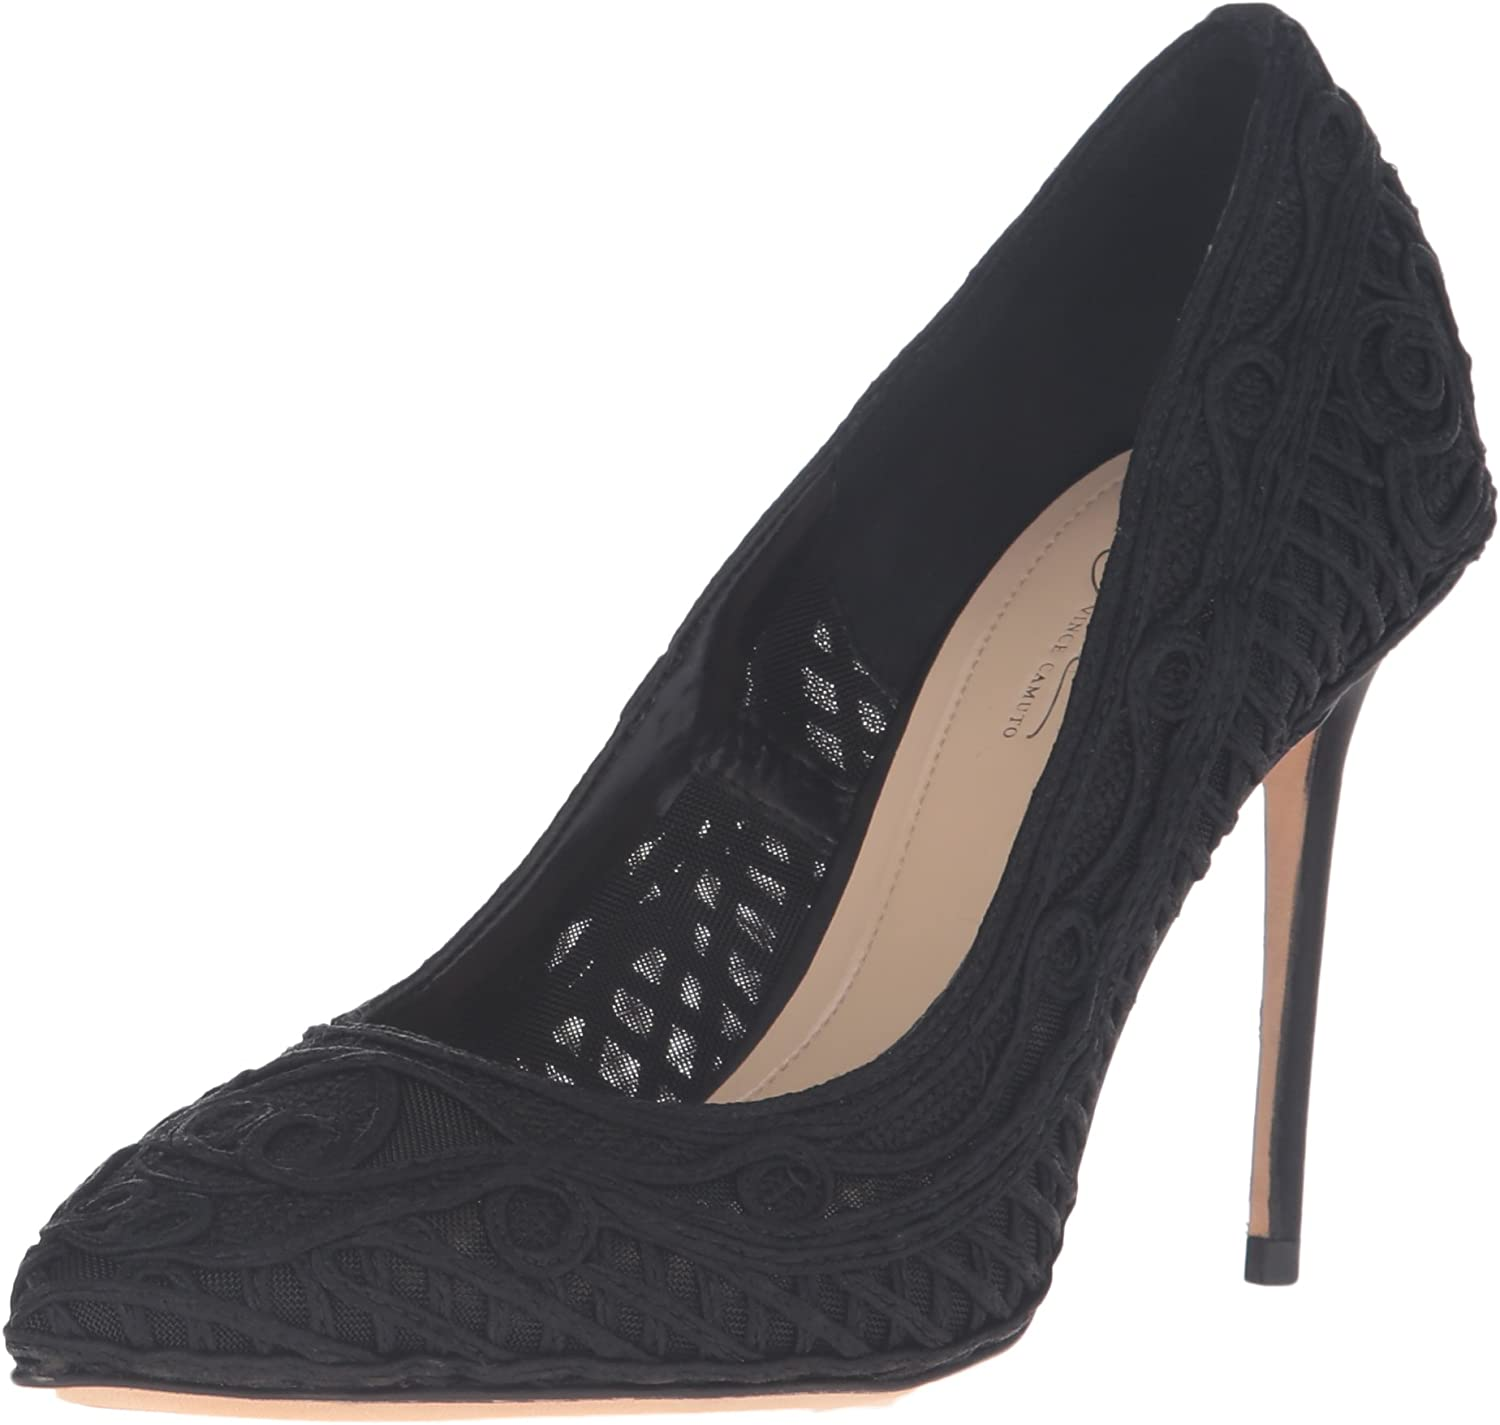 Imagine Vince Camuto Women's Olivia Dress Pump